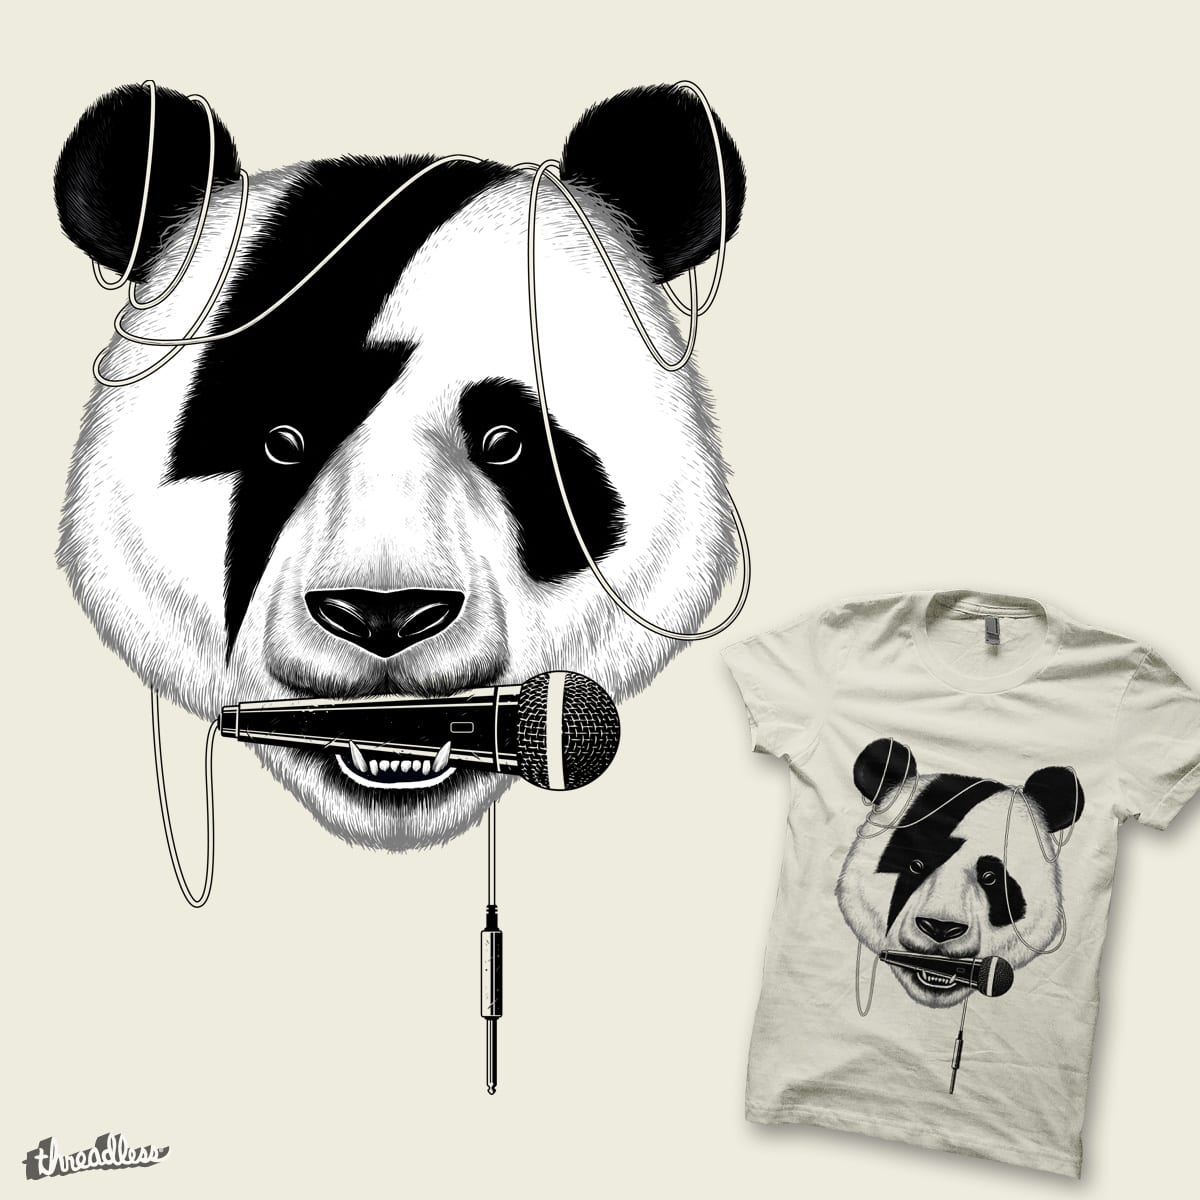 Panda Rocks! by azrhon on Threadless